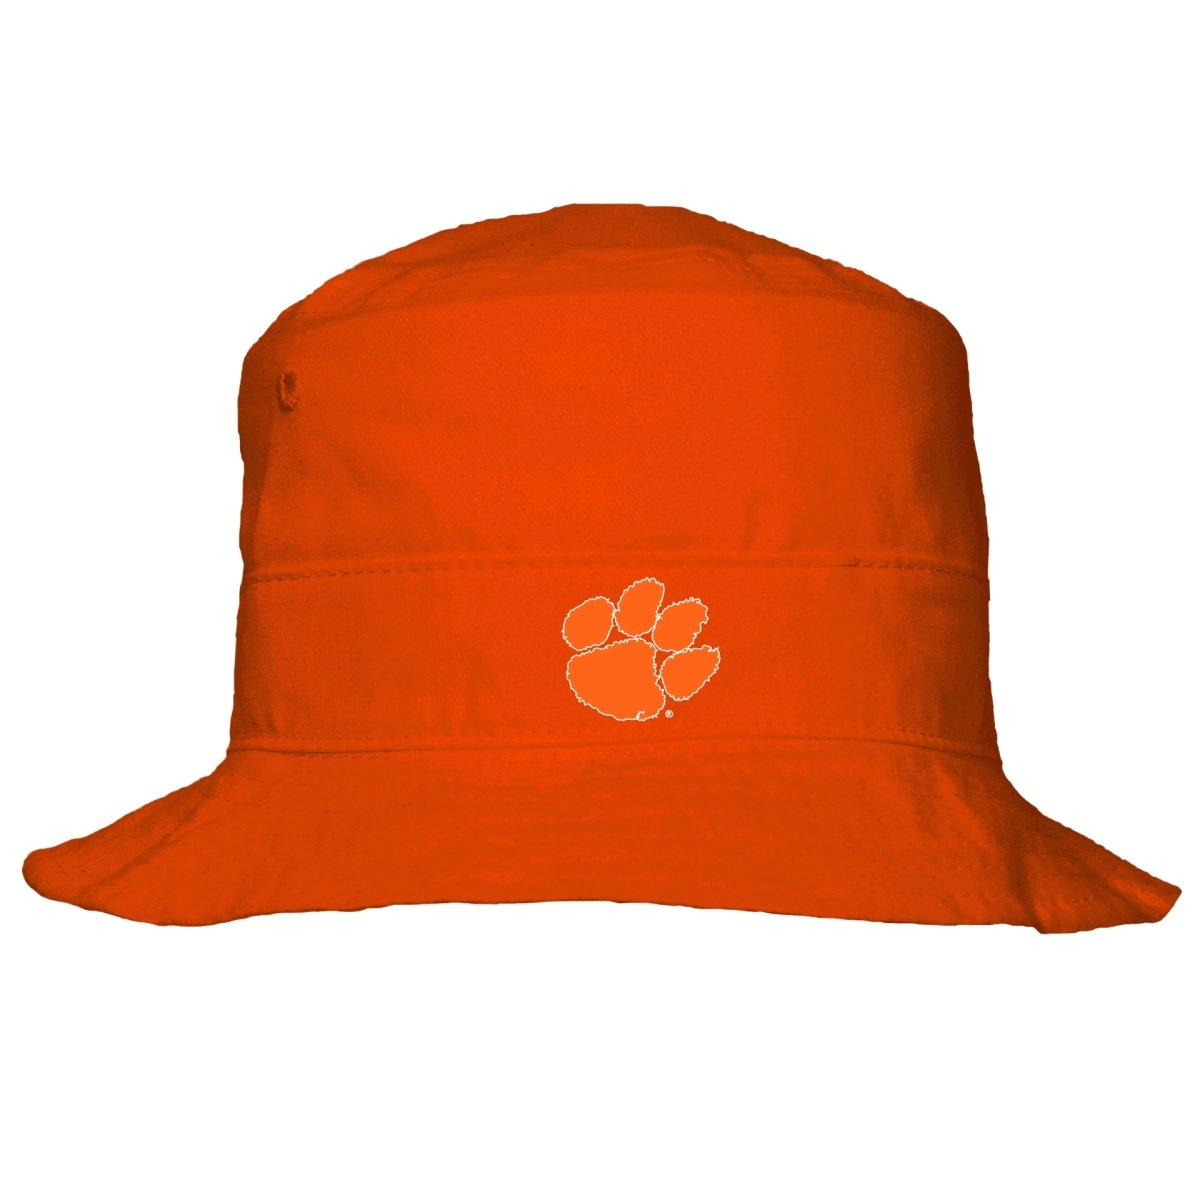 Two Feet Ahead Clemson Tigers Bucket Hat - Mr. Knickerbocker